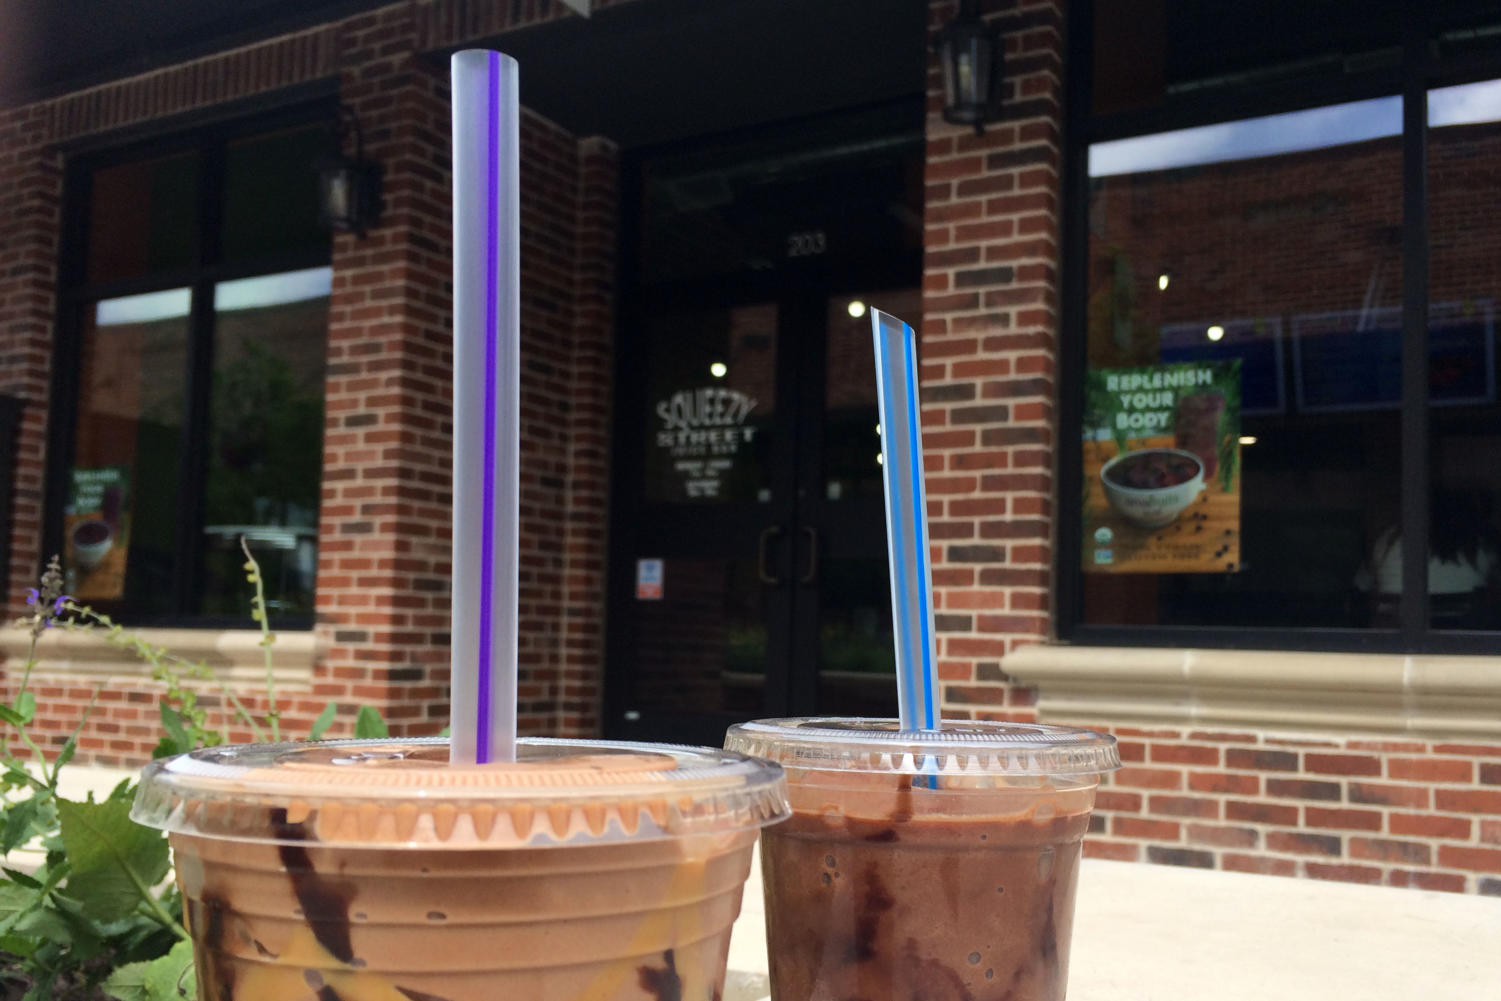 The Peanut Butter Cup and the Chocolate smoothies from Squeezy Street come at a high price, but are a delicious summer treat.